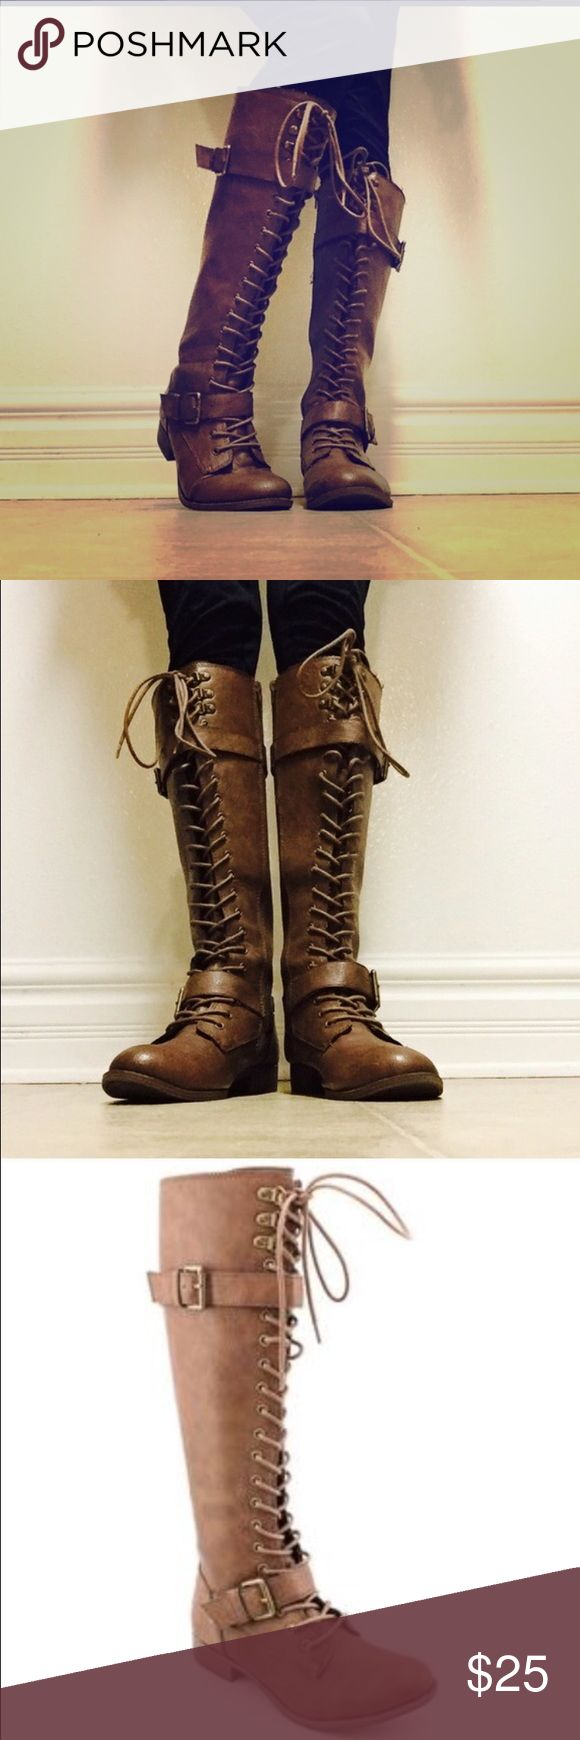 Tall lace up boots Just below the knee Rocket Dog lace up brown leather boots. Excellent condition as I only wore them a few times! Shoes Lace Up Boots